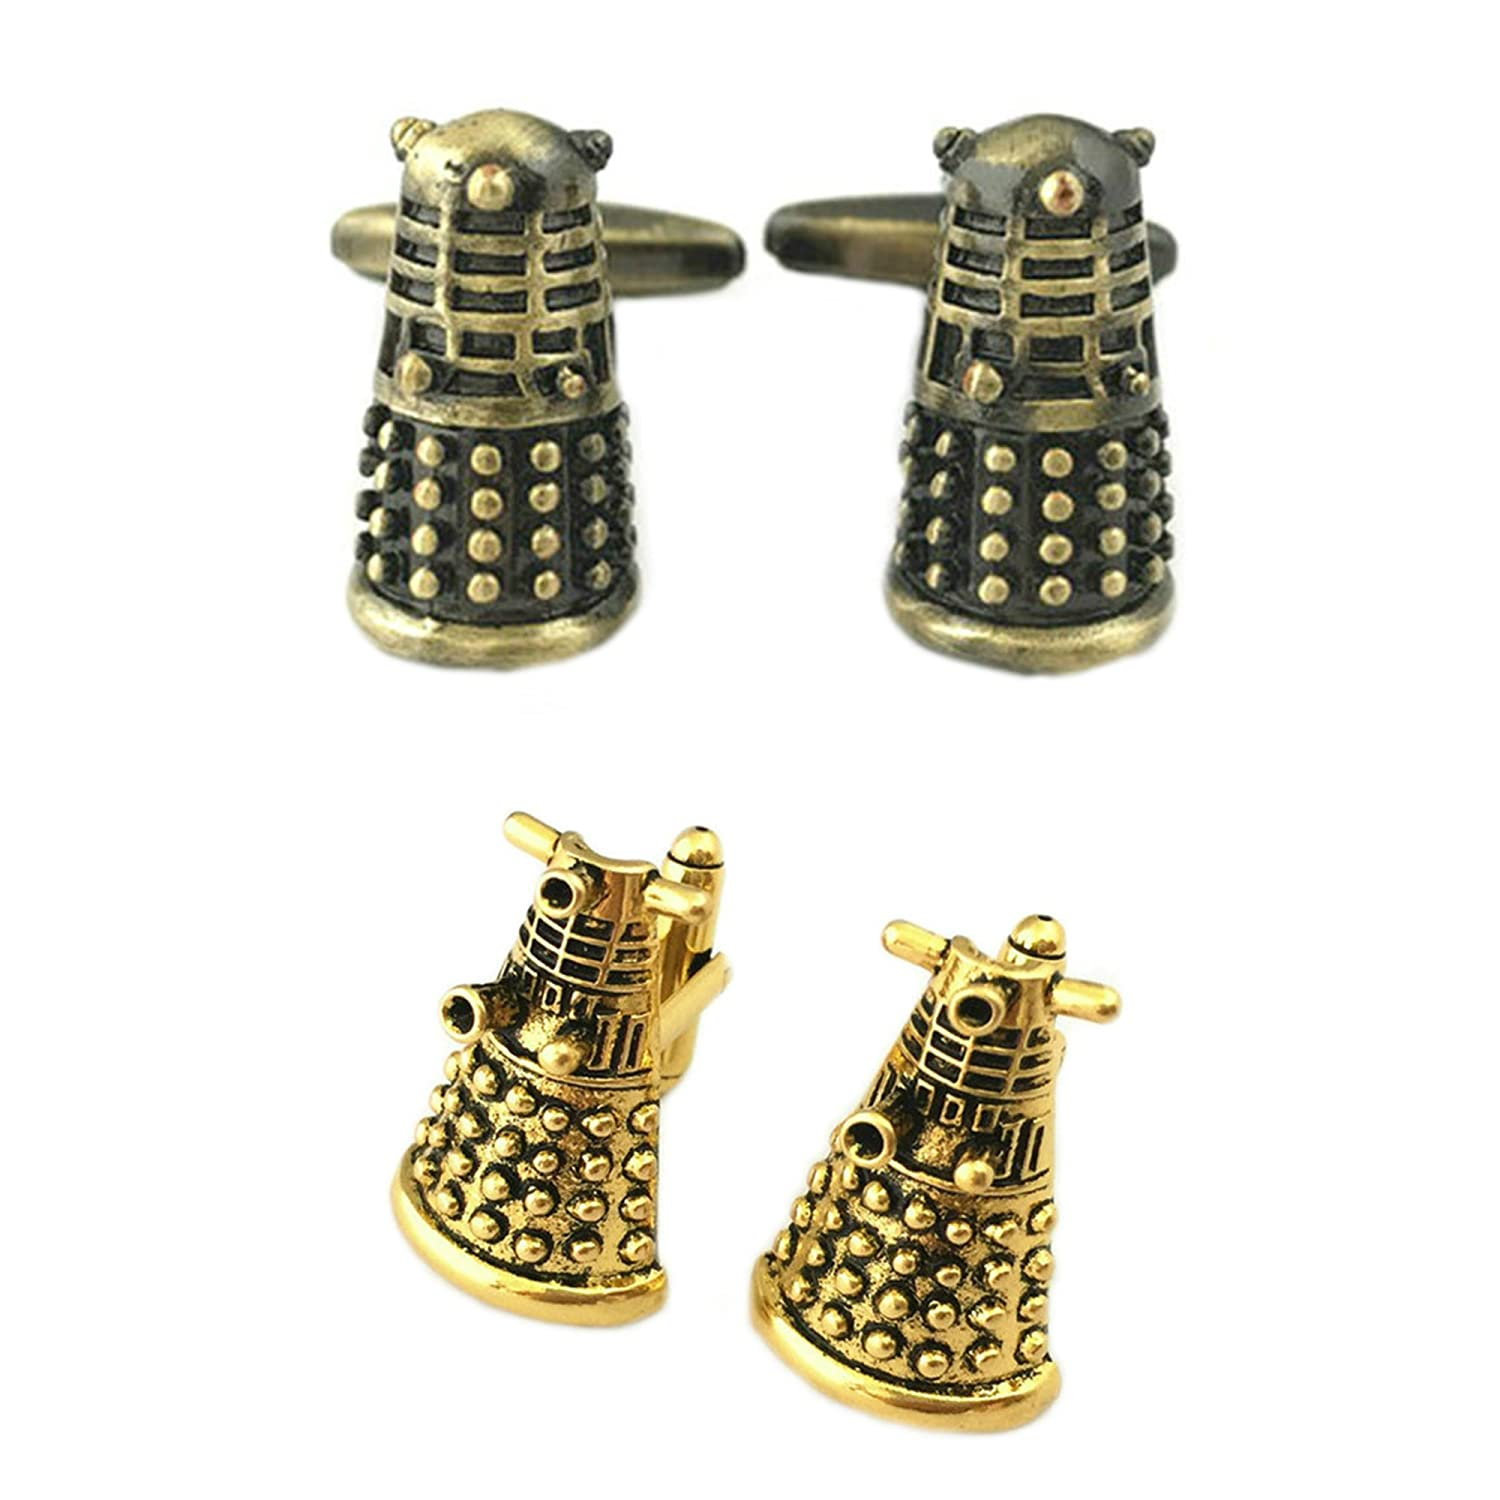 Outlander Gear Doctor Who 2 Pairs Dalek Bronze & Dalek Gold Superhero 2018 Sci-fi TV Series Wedding Groom Groomsmen Mens Boys Cufflinks